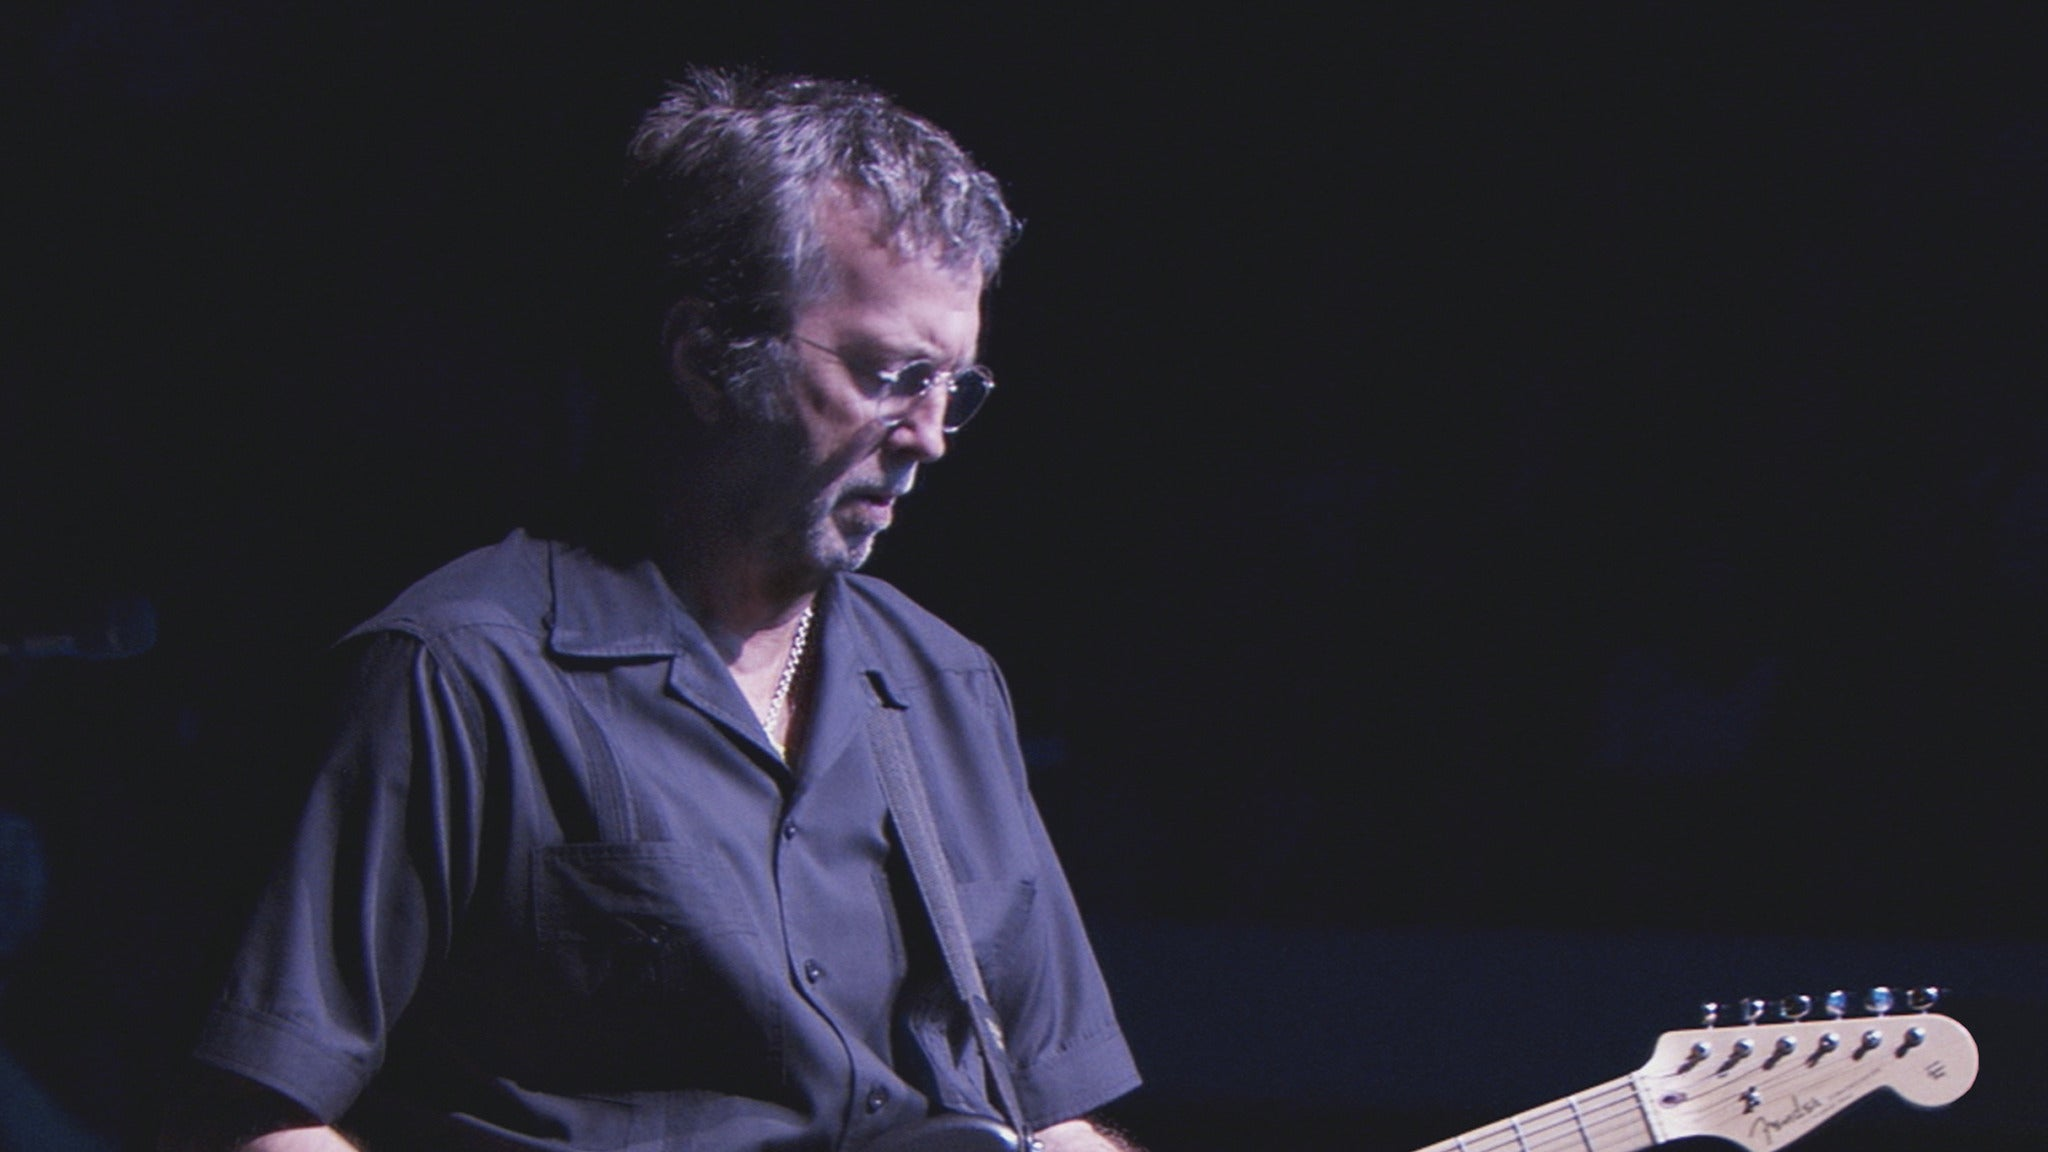 Eric Clapton at The Forum